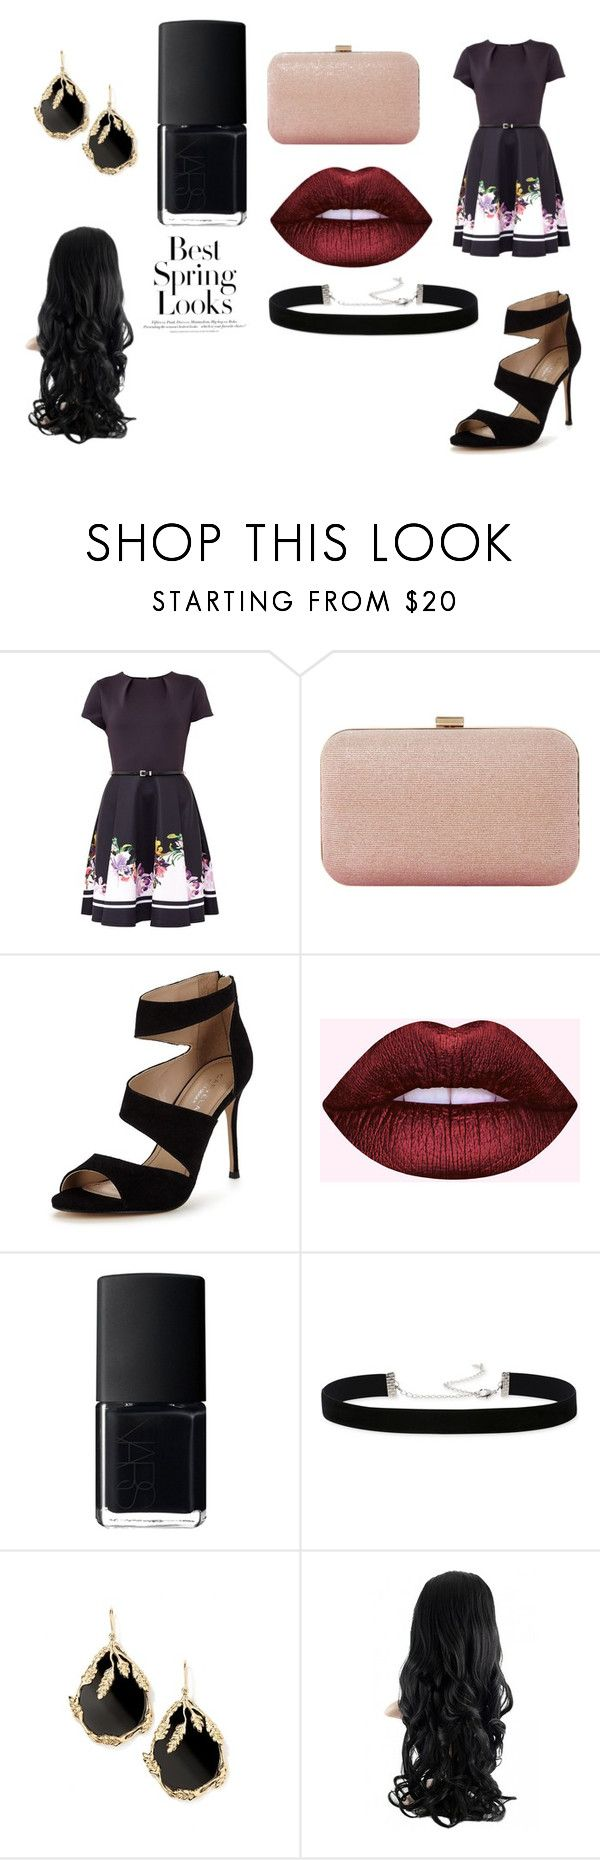 """spring look 2021"" by suzy-782 on Polyvore featuring Ted Baker, Dune, Carvela, NARS Cosmetics, 2028, Aurélie Bidermann and H&M"